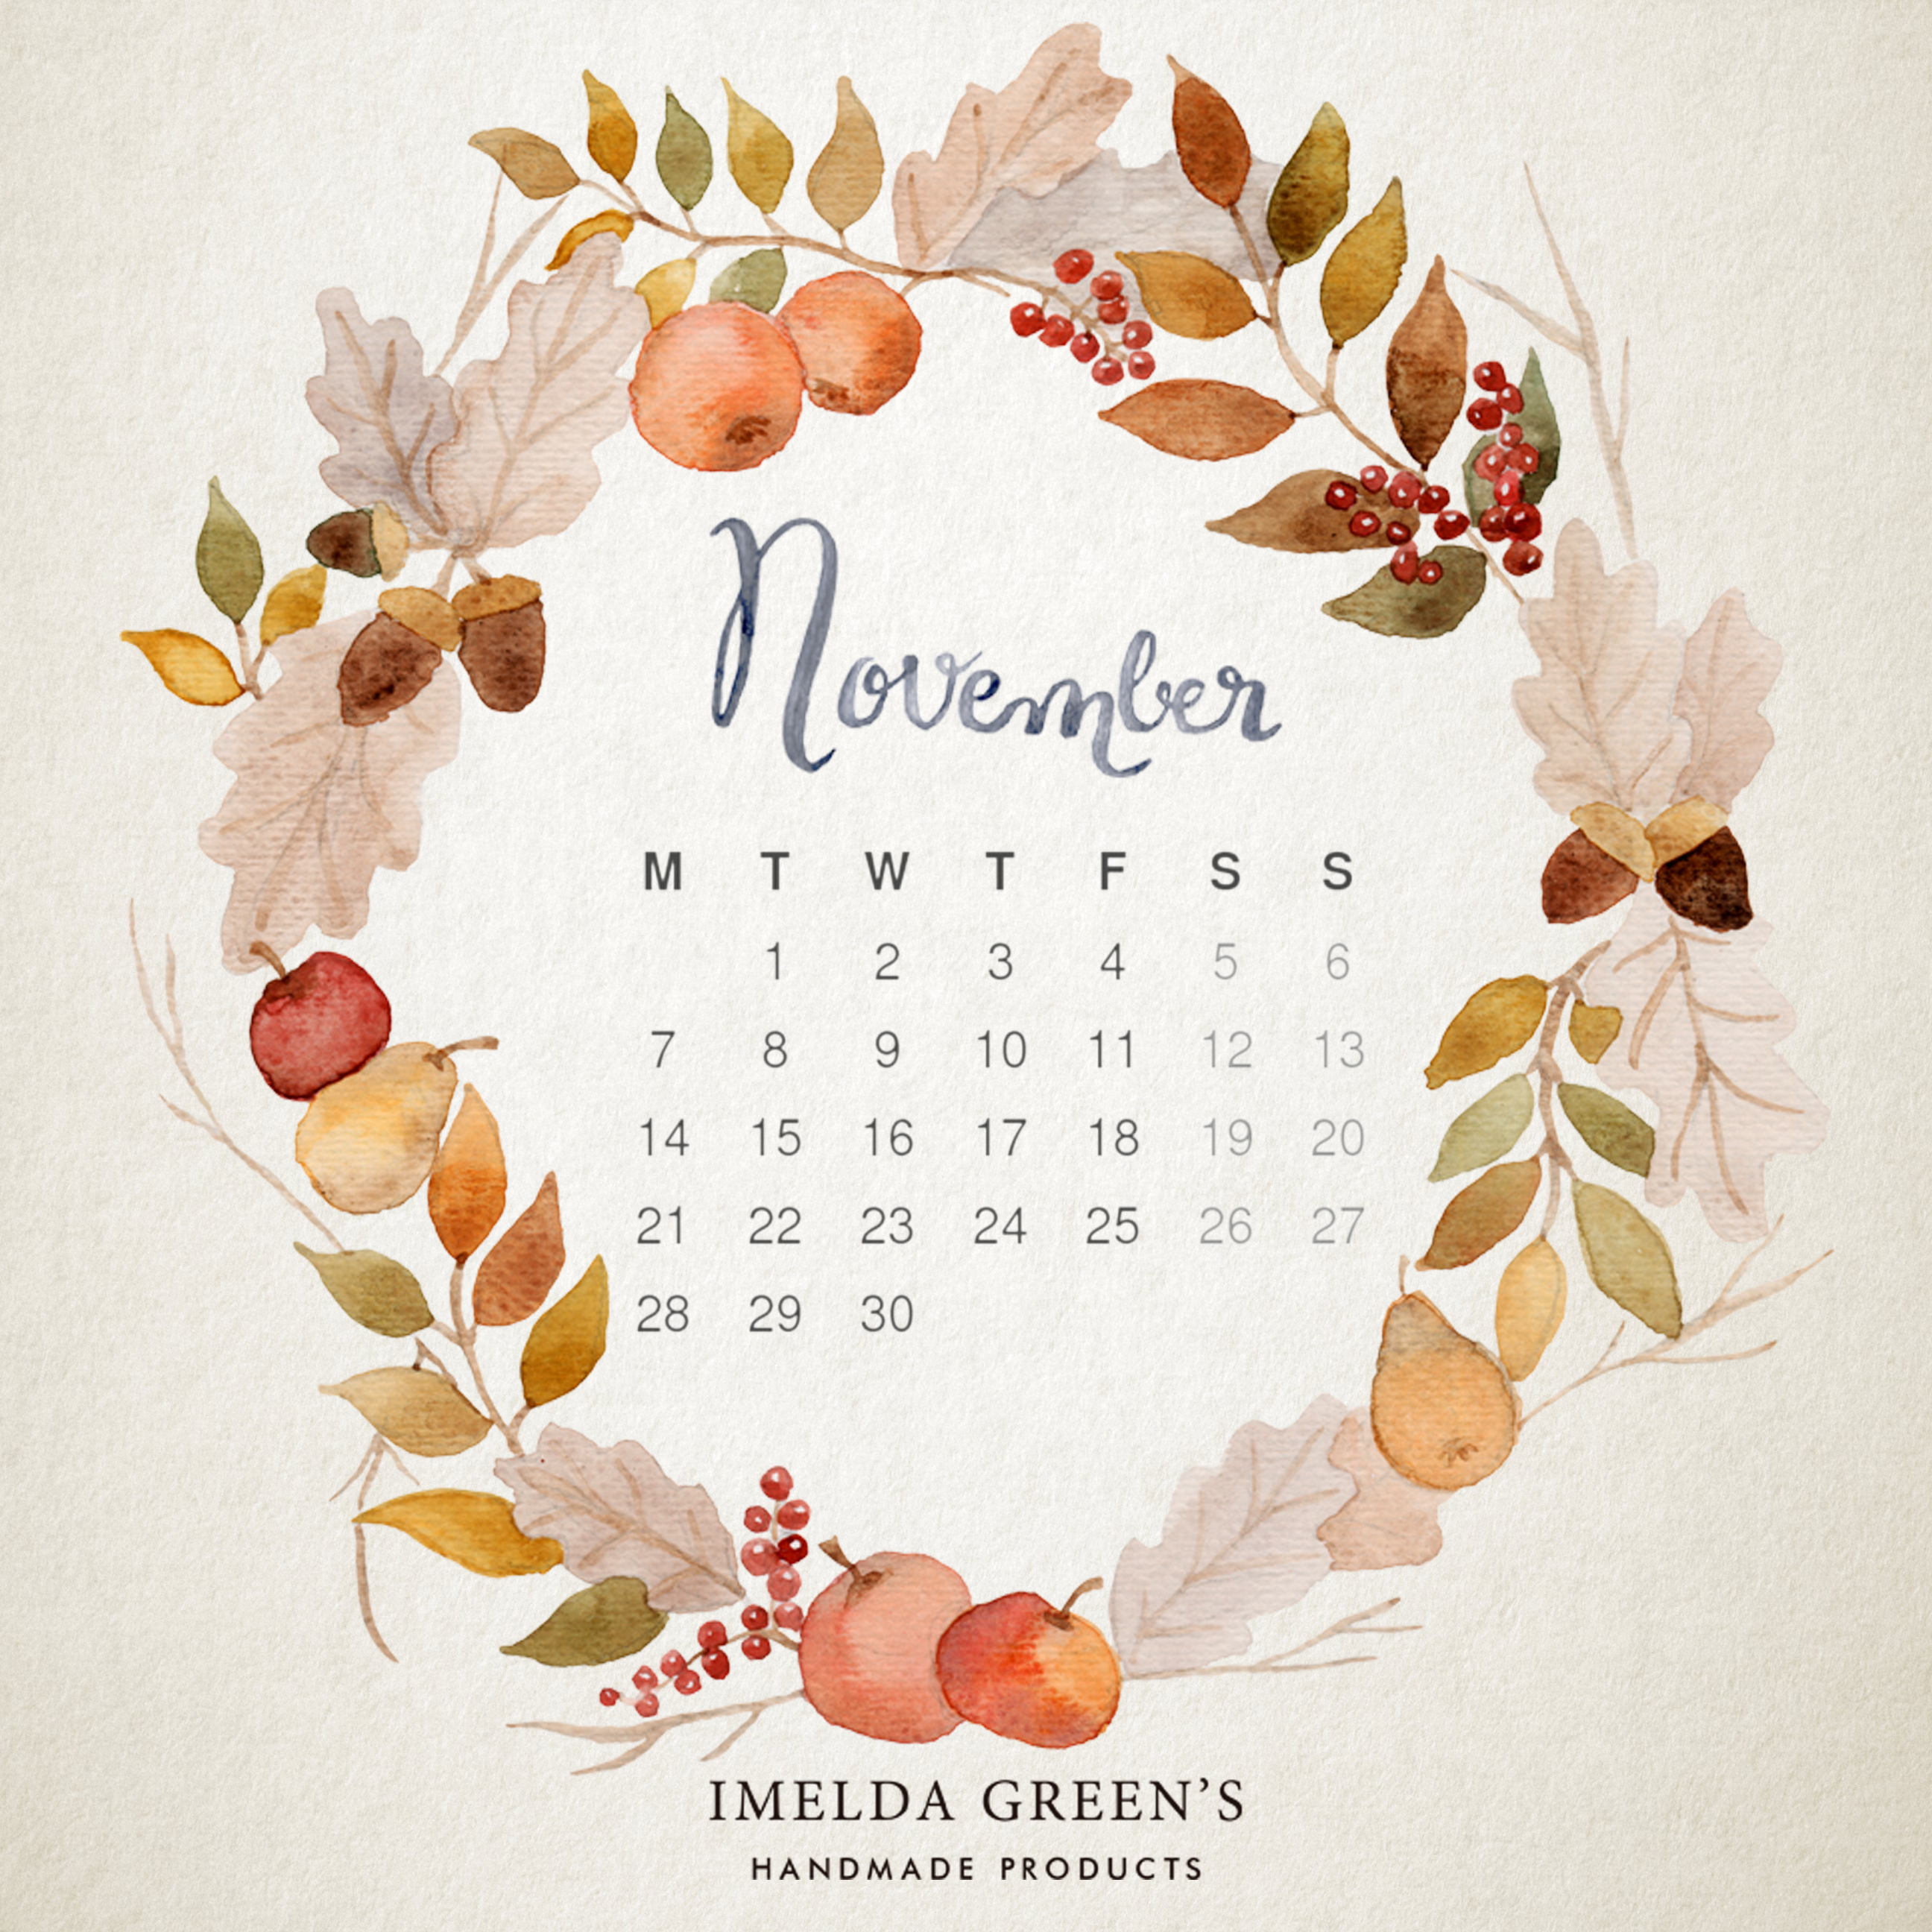 Hand-painted wallpaper calendar free download